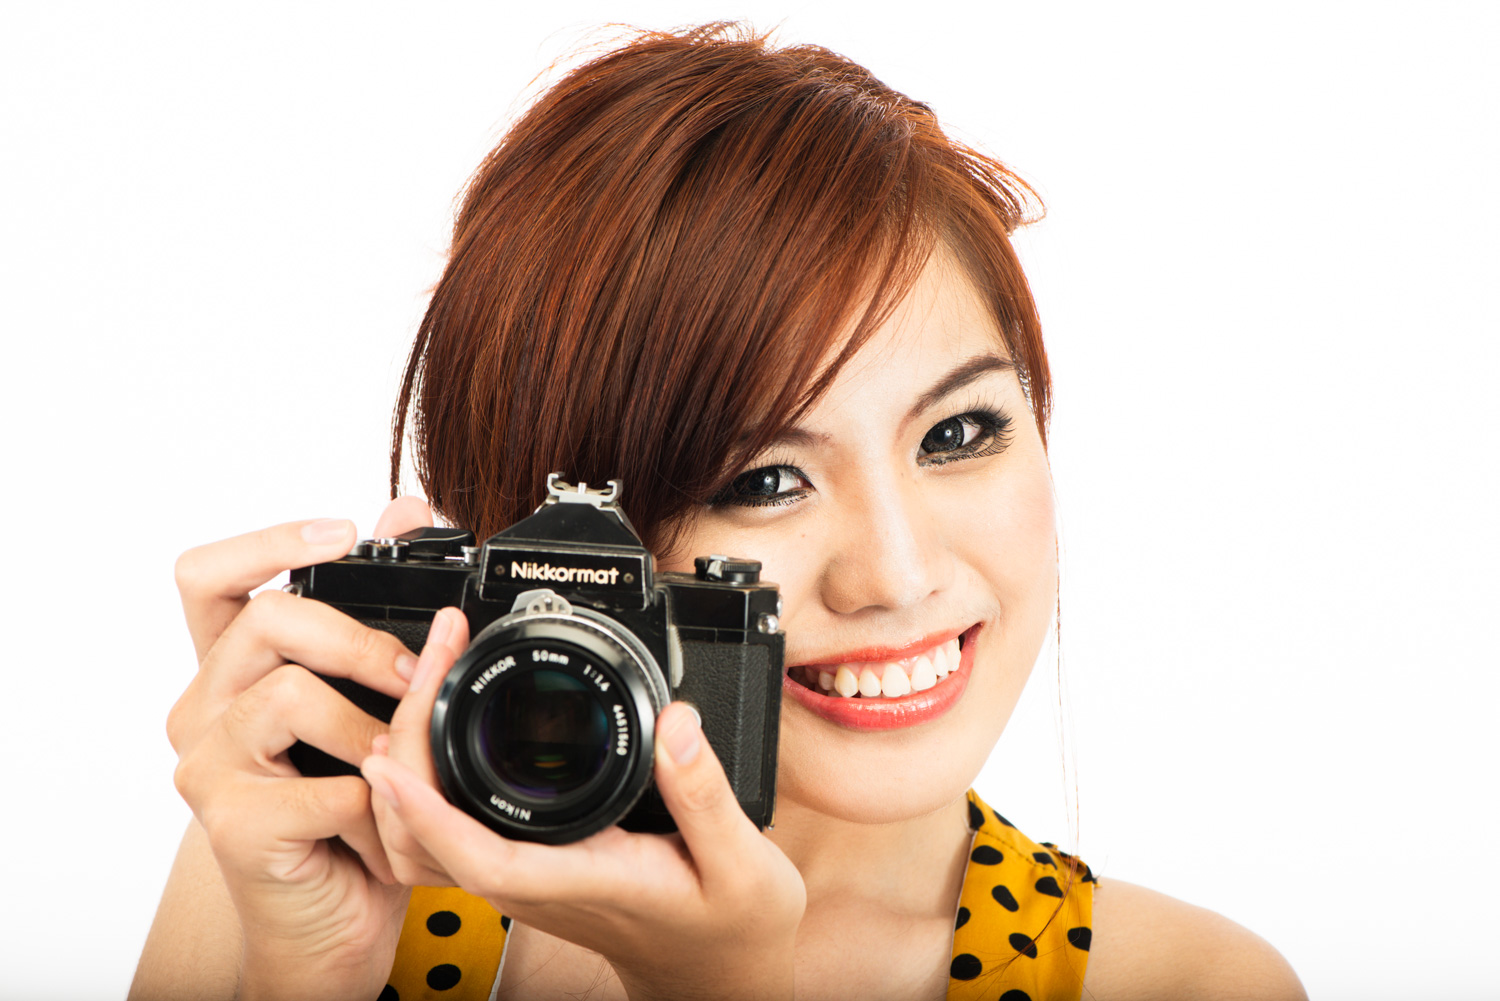 Portrait of an Asian woman with a Nikkormat FTN film camera - 4 Tips to Help You Overcome the Fear of Photographing People